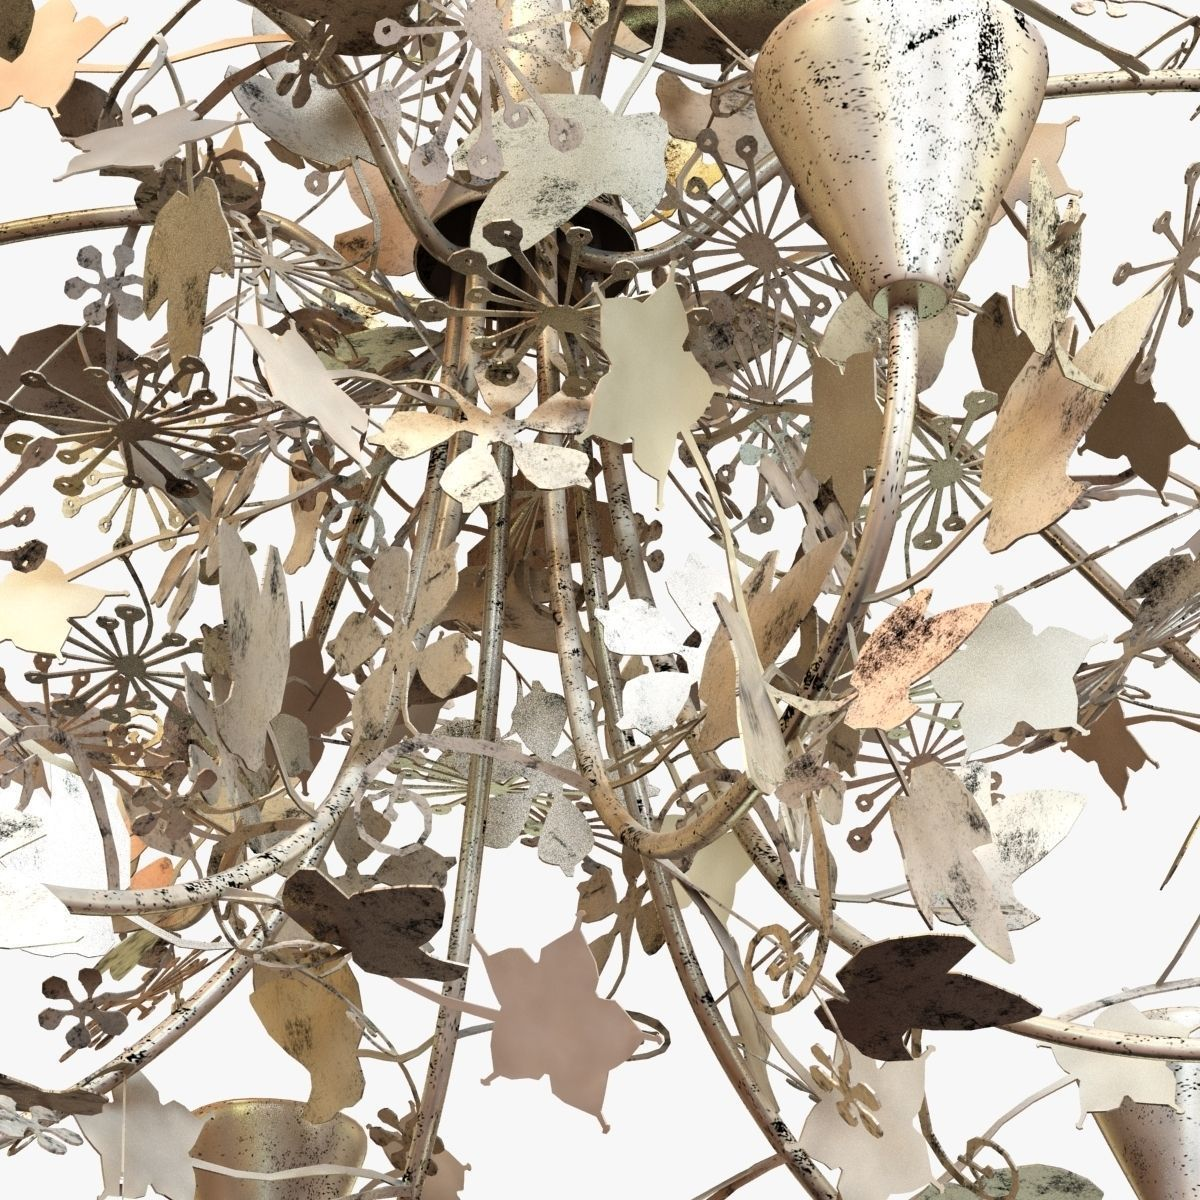 Porta romana ivy shadow chandelier forest gold 3d model max obj porta romana ivy shadow chandelier forest gold 3d model max obj 3ds fbx mtl aloadofball Choice Image